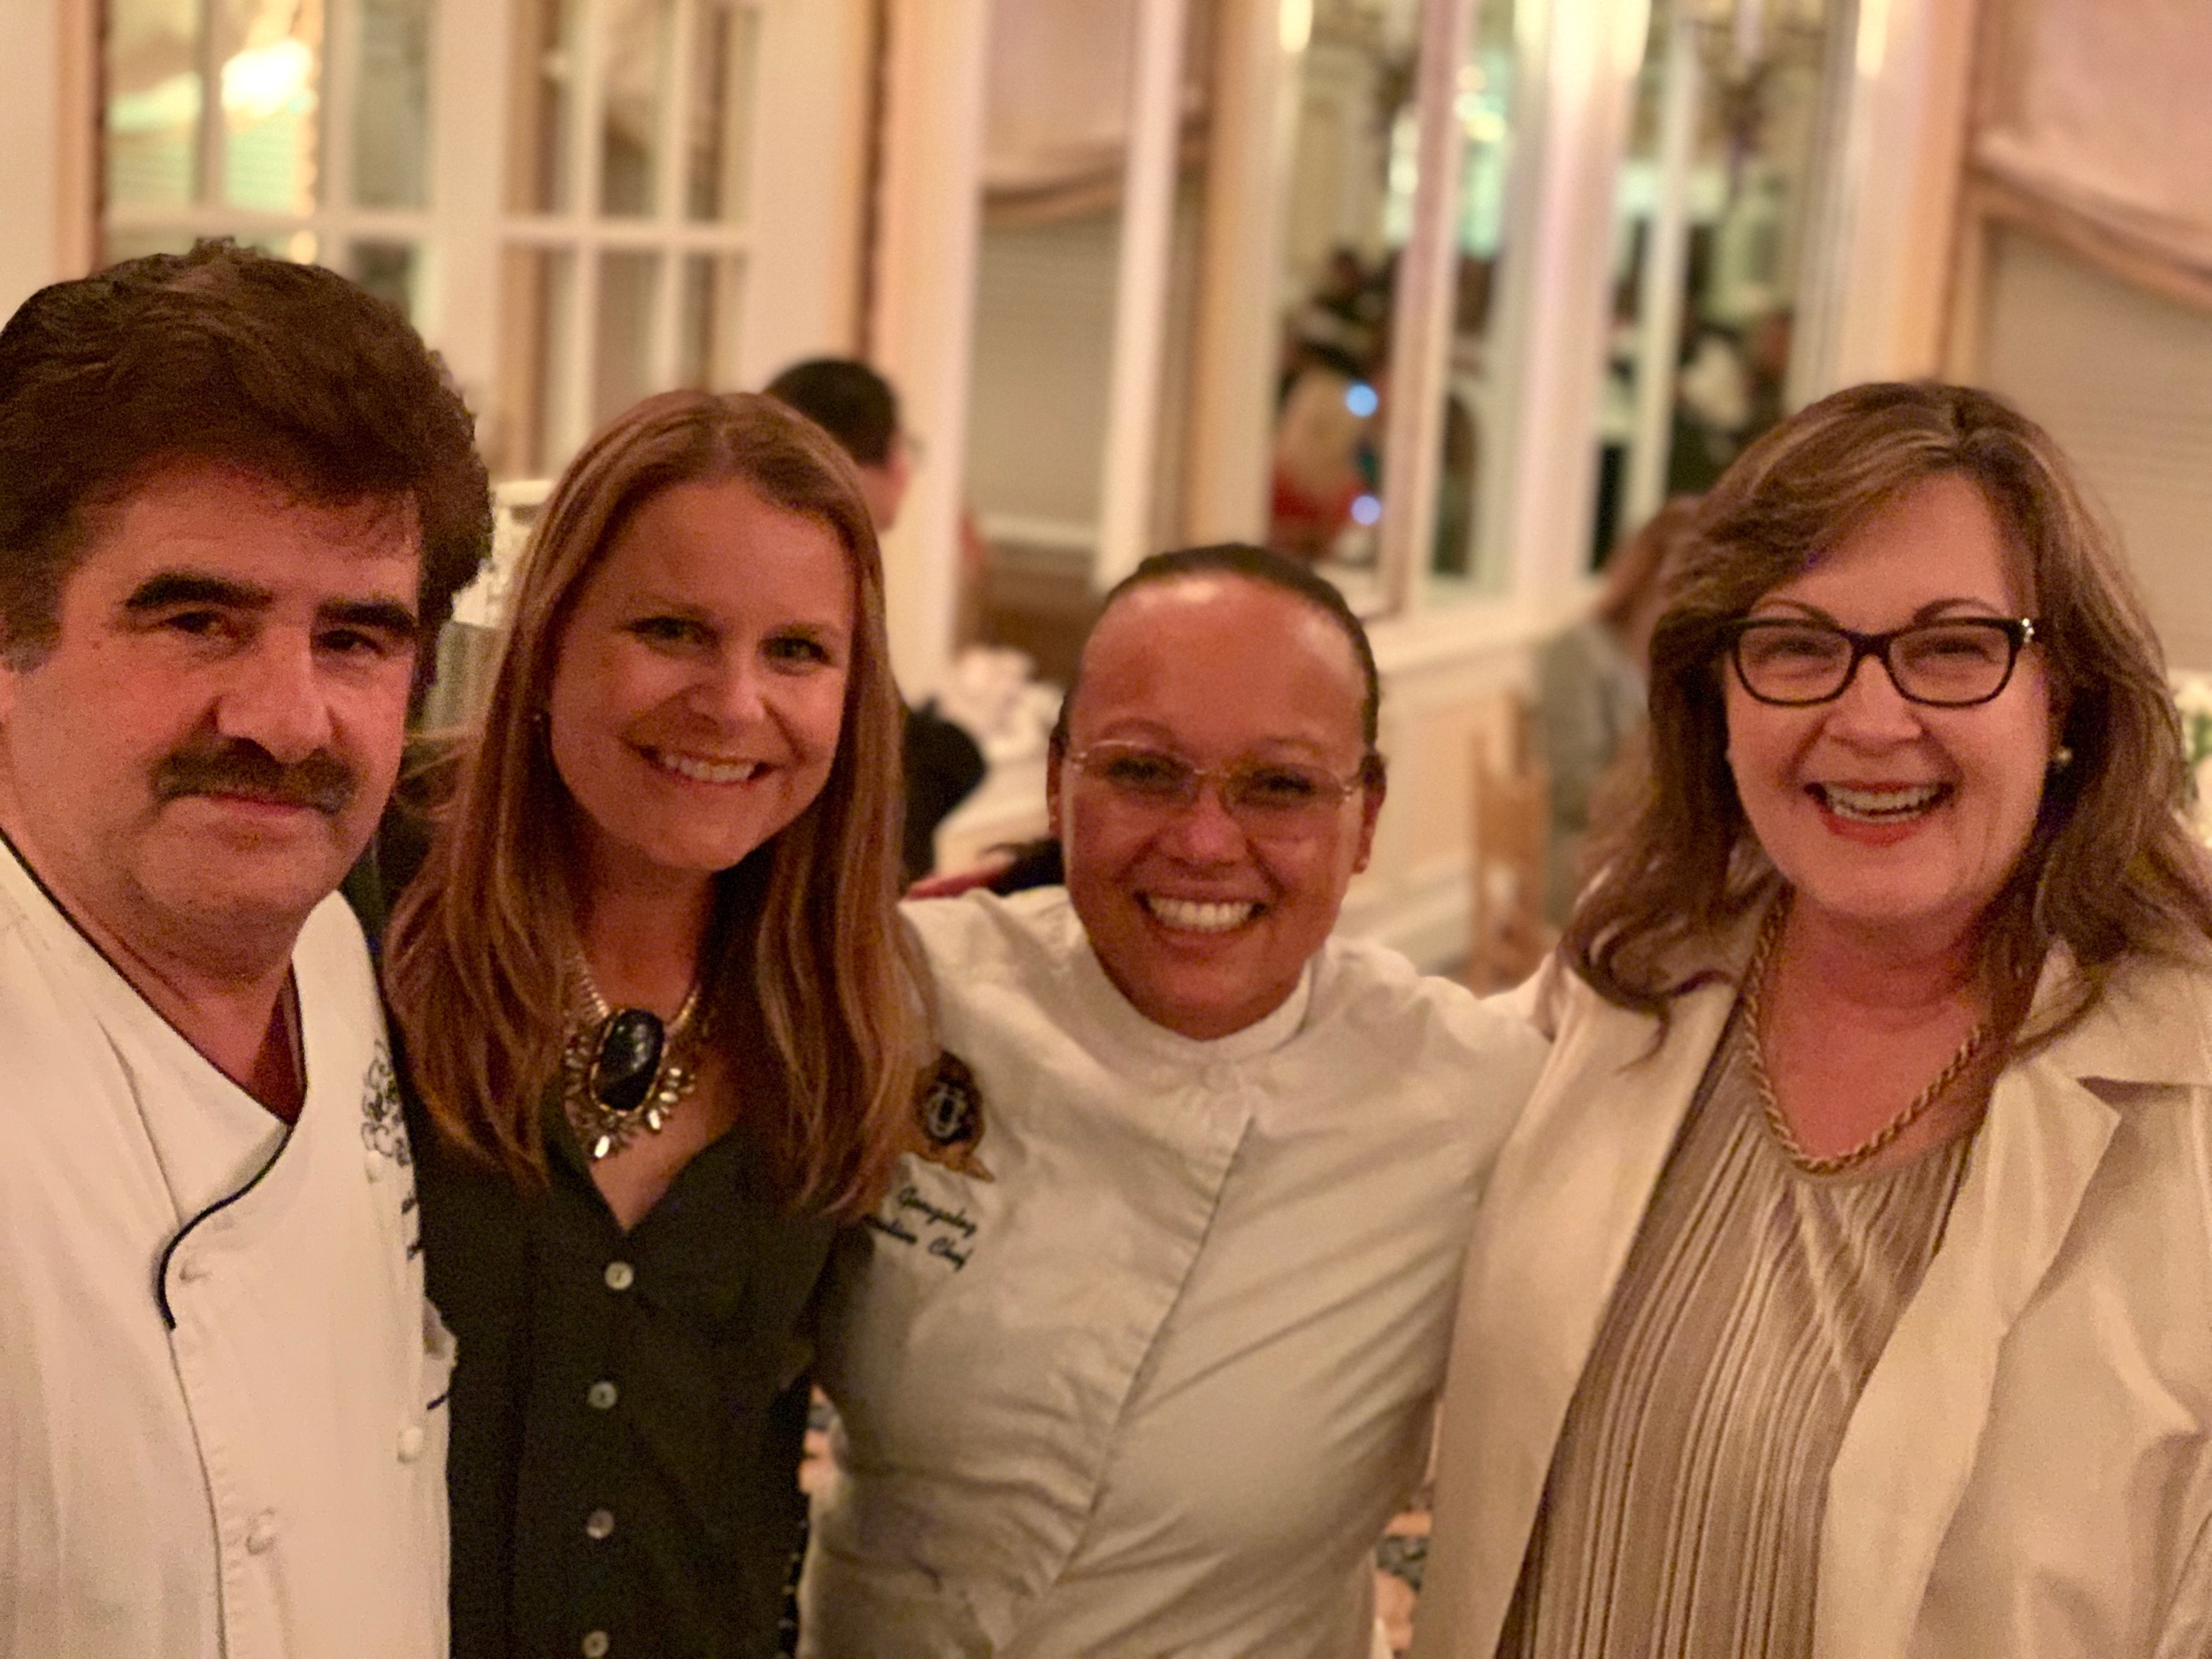 150th Peabody Anniversary with Chef Anna and Chef Andreas